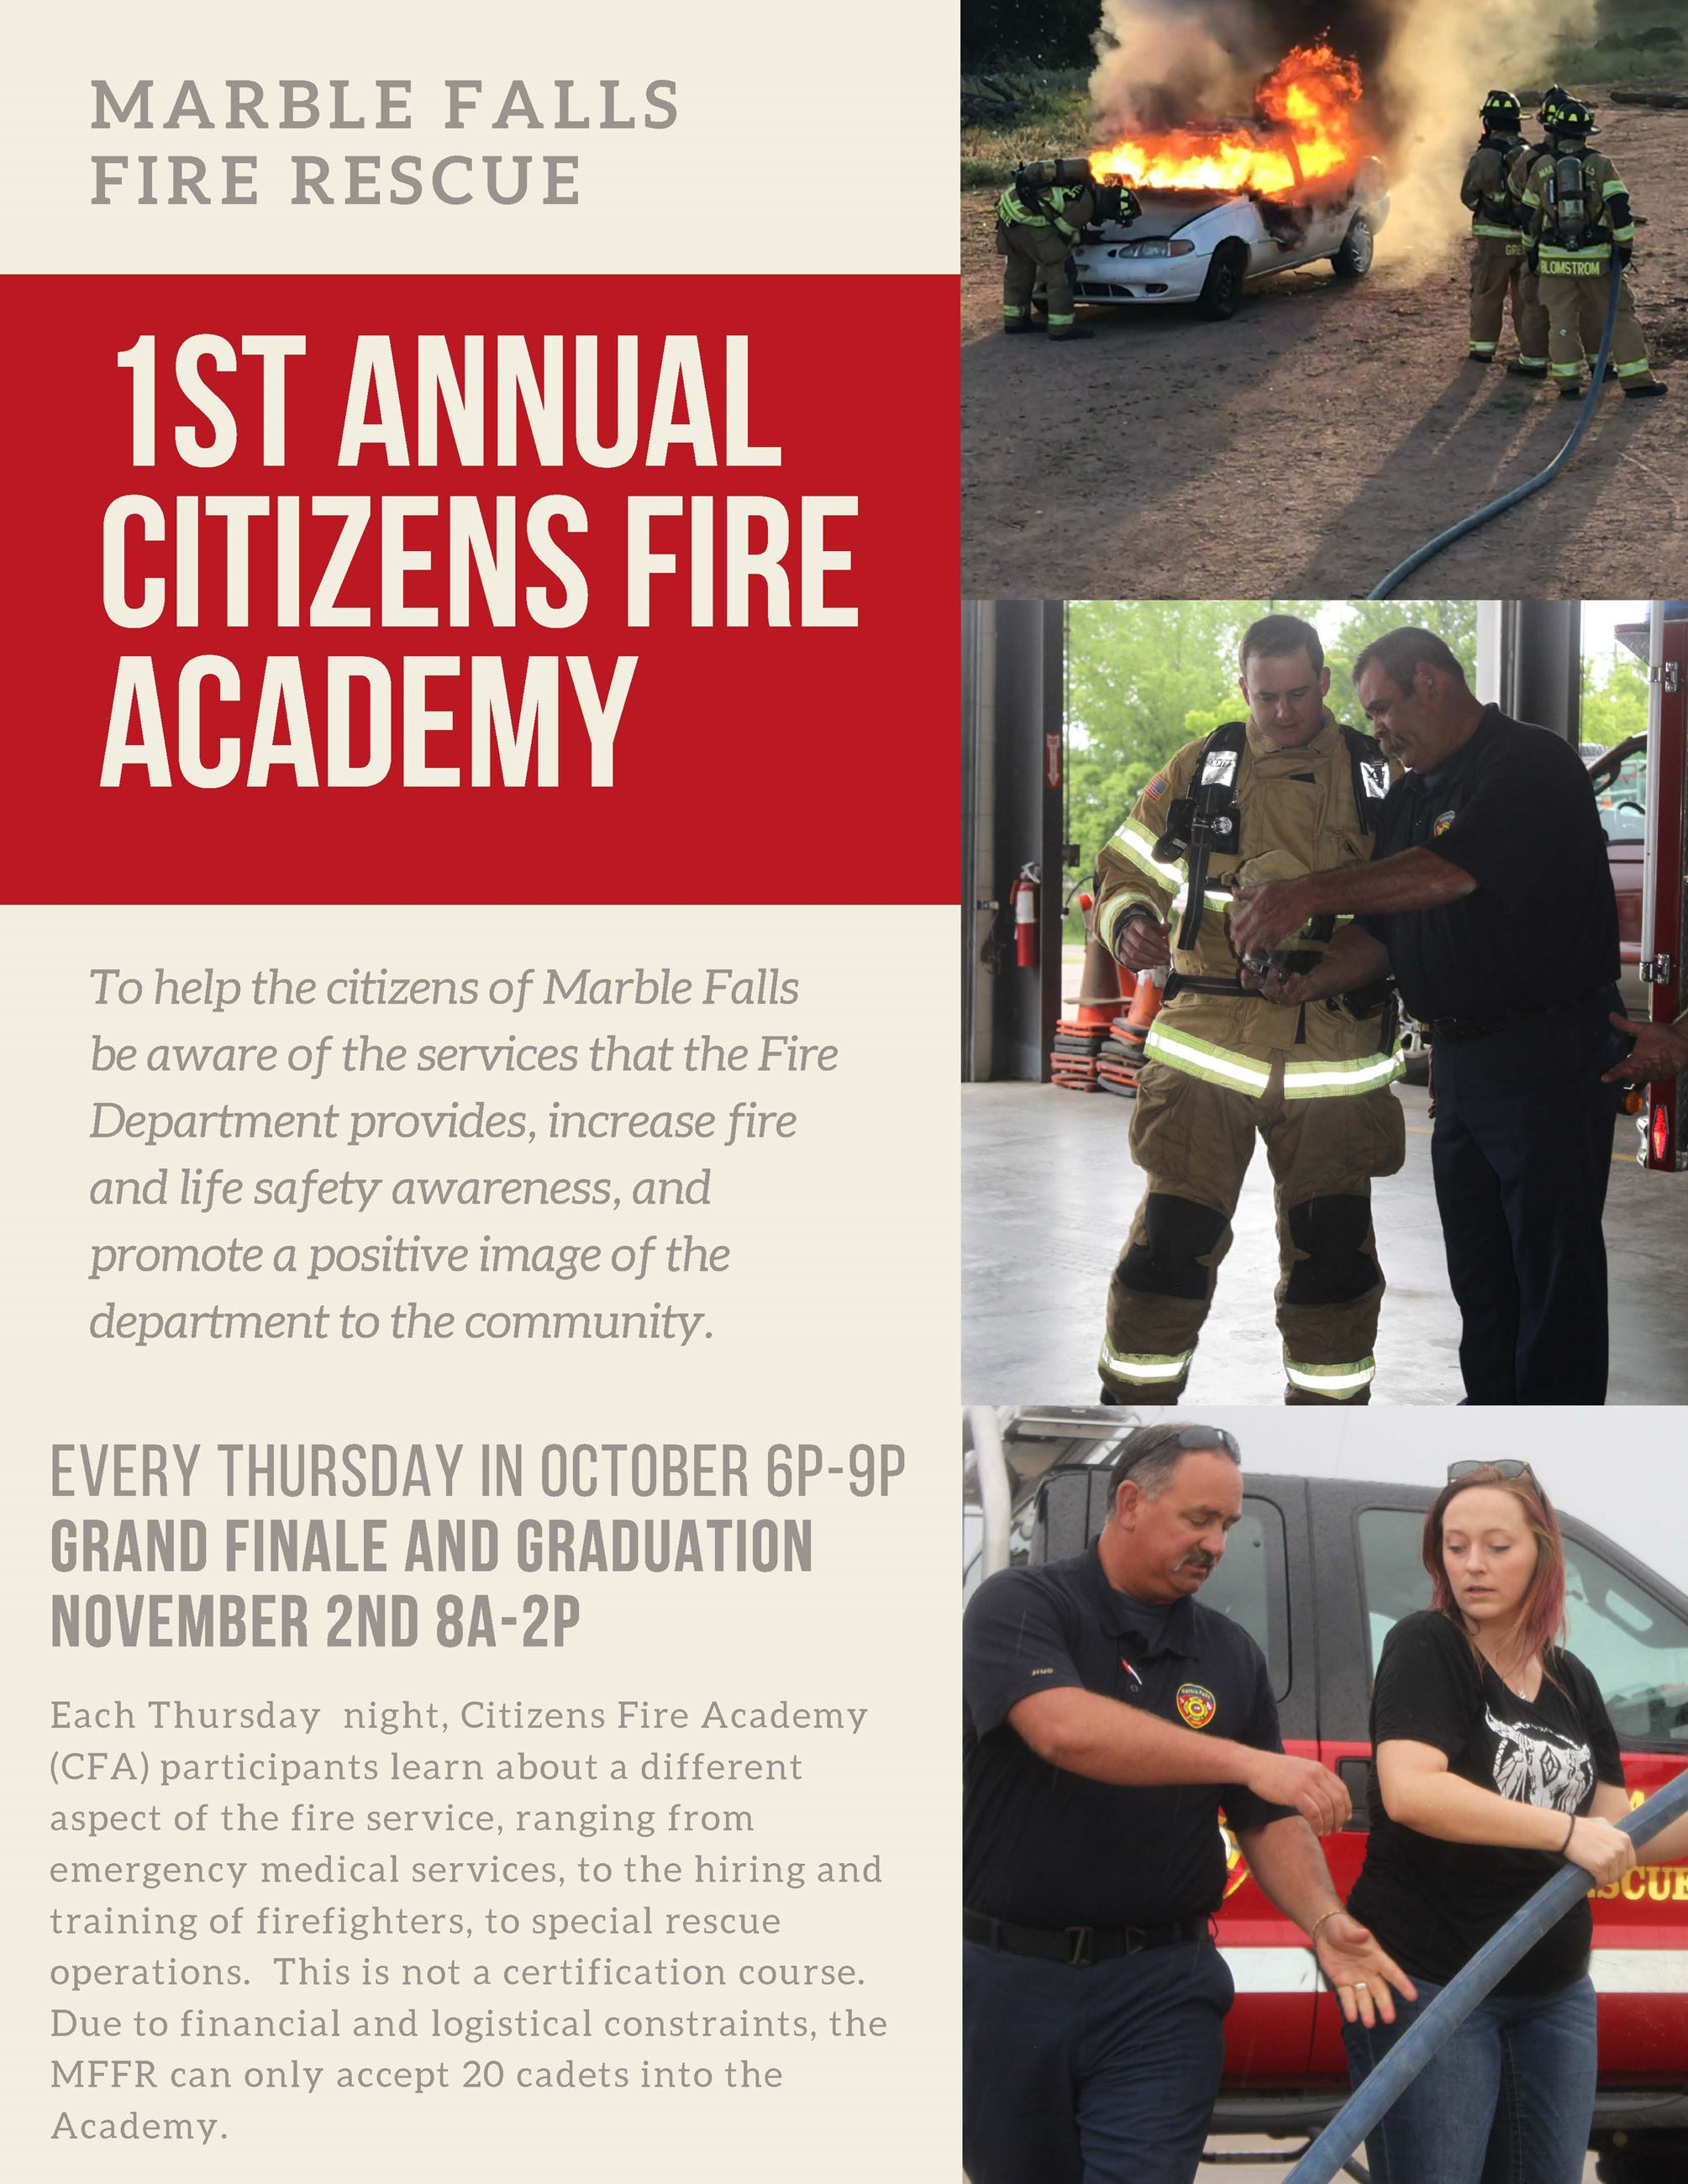 Citizens Fire Academy